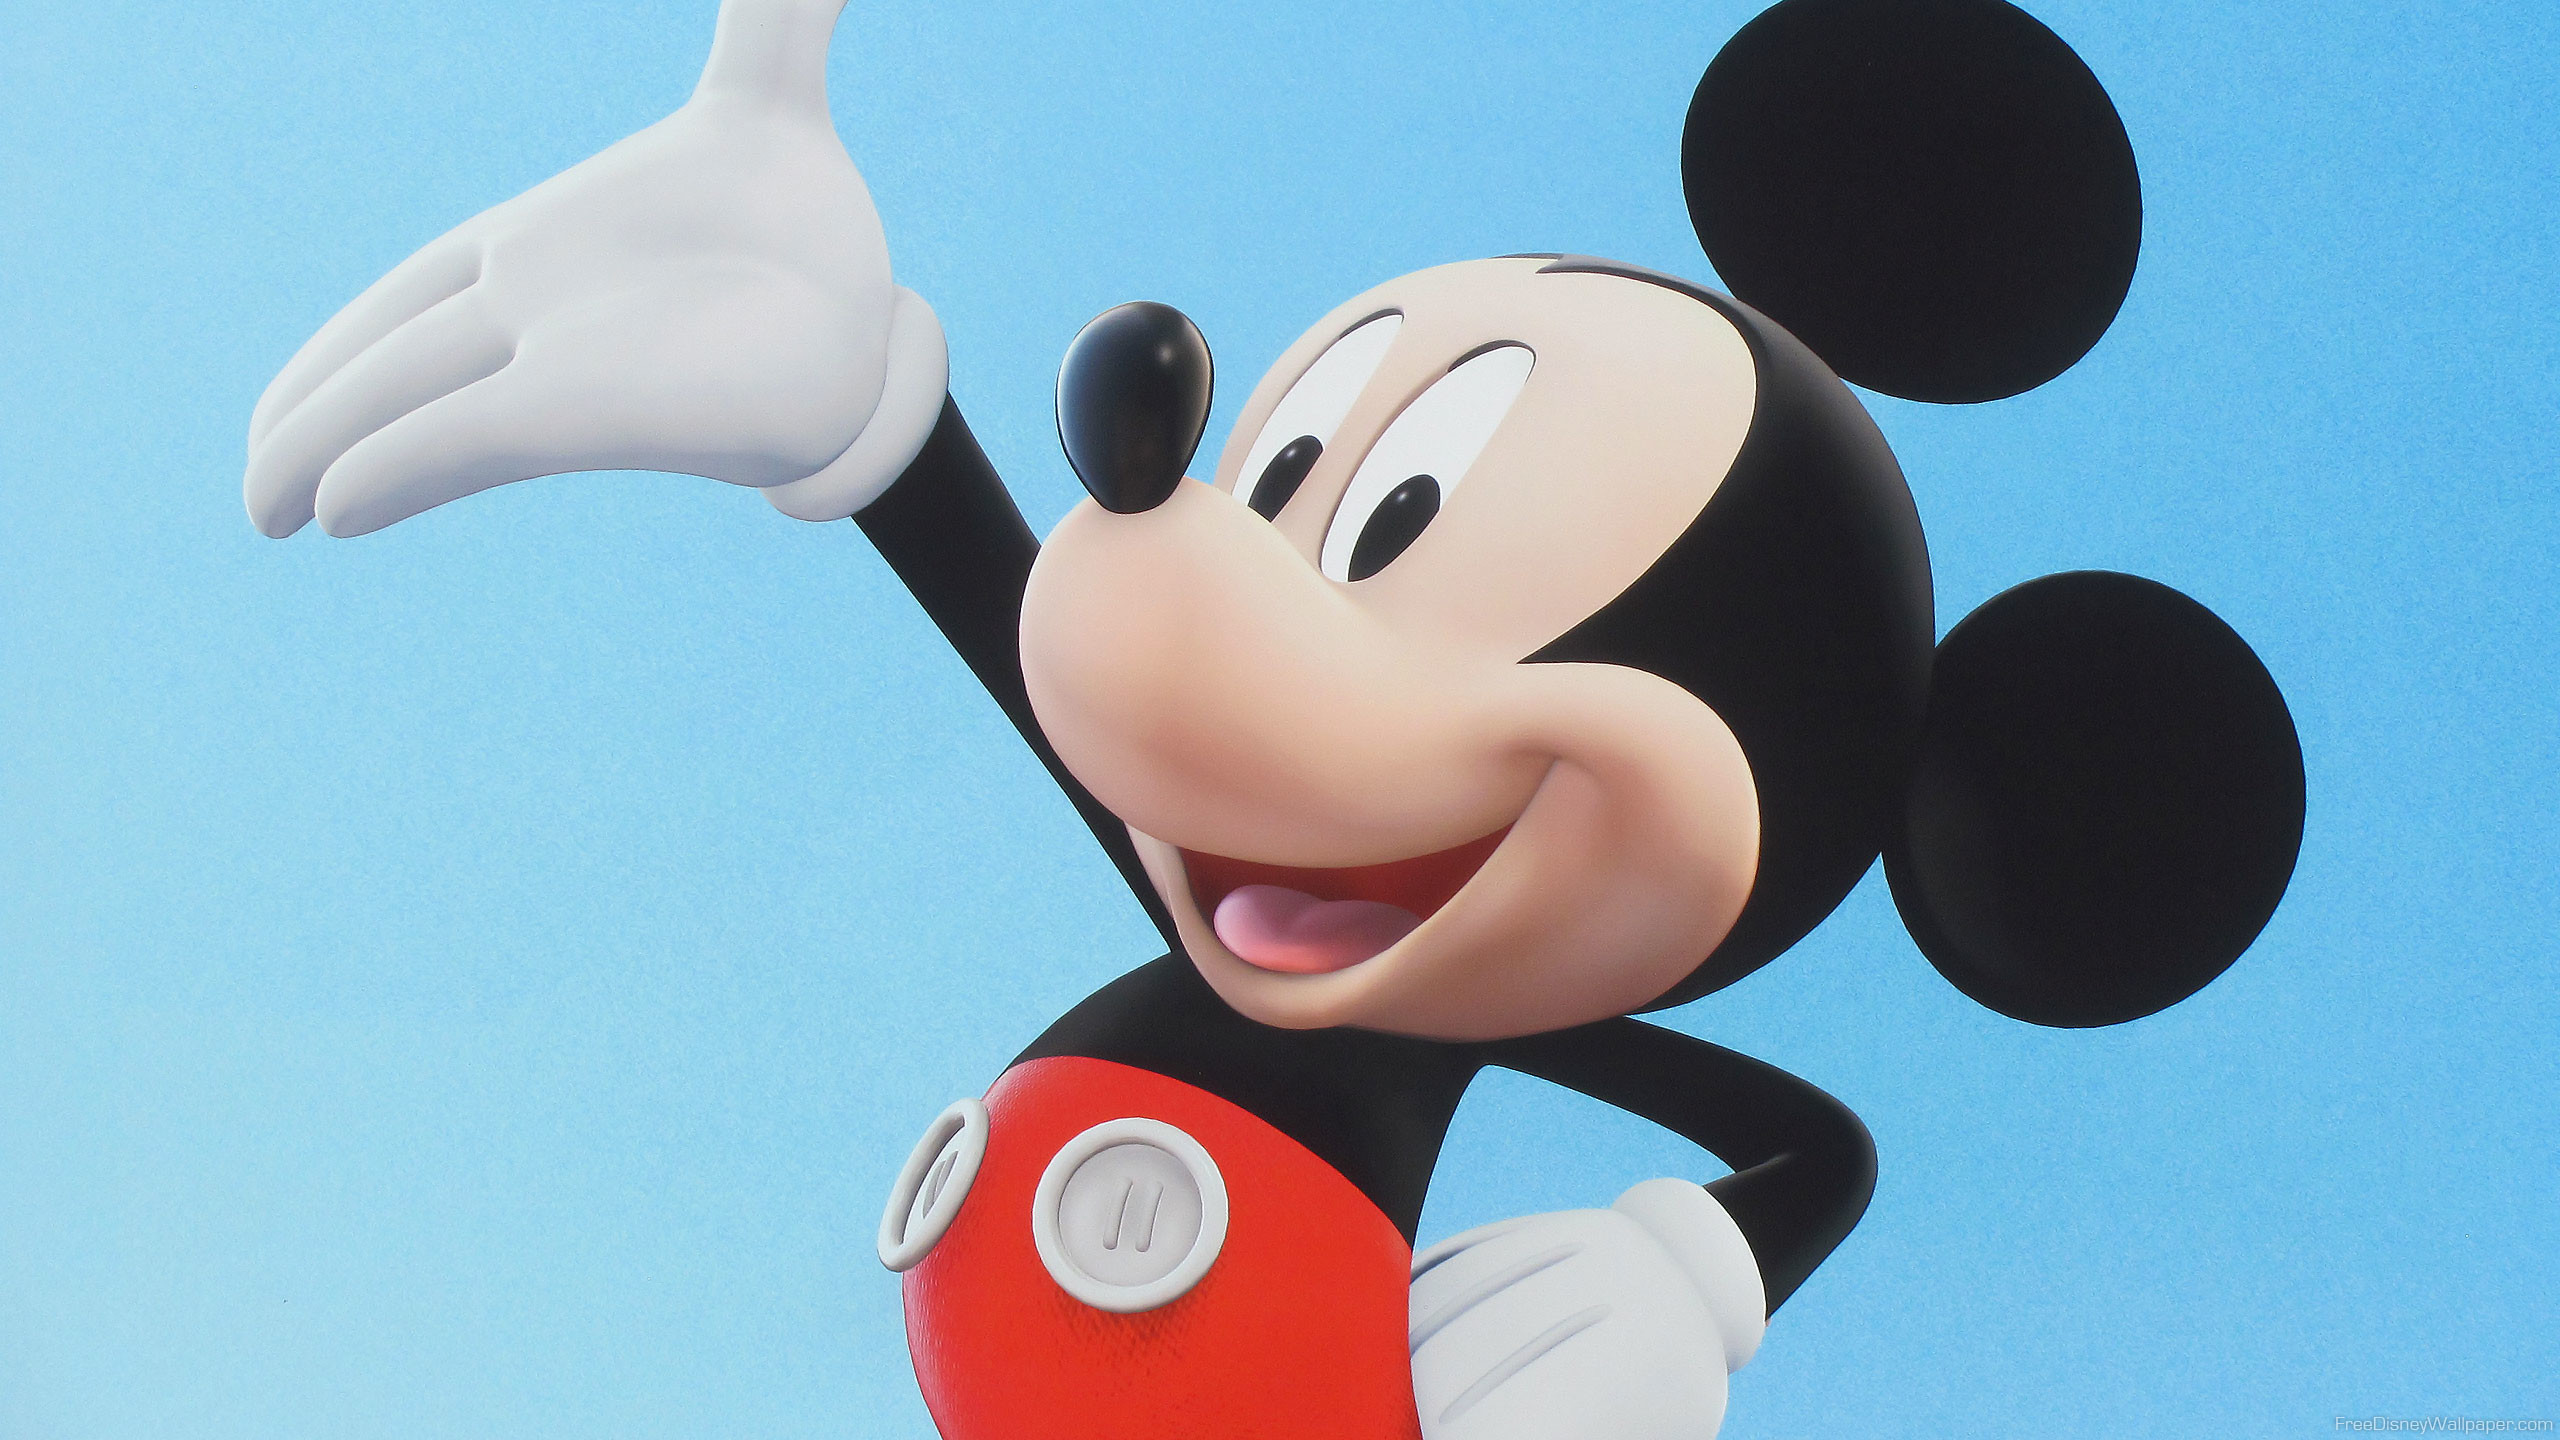 2560x1440 10. mickey-mouse-wallpapers-600x338